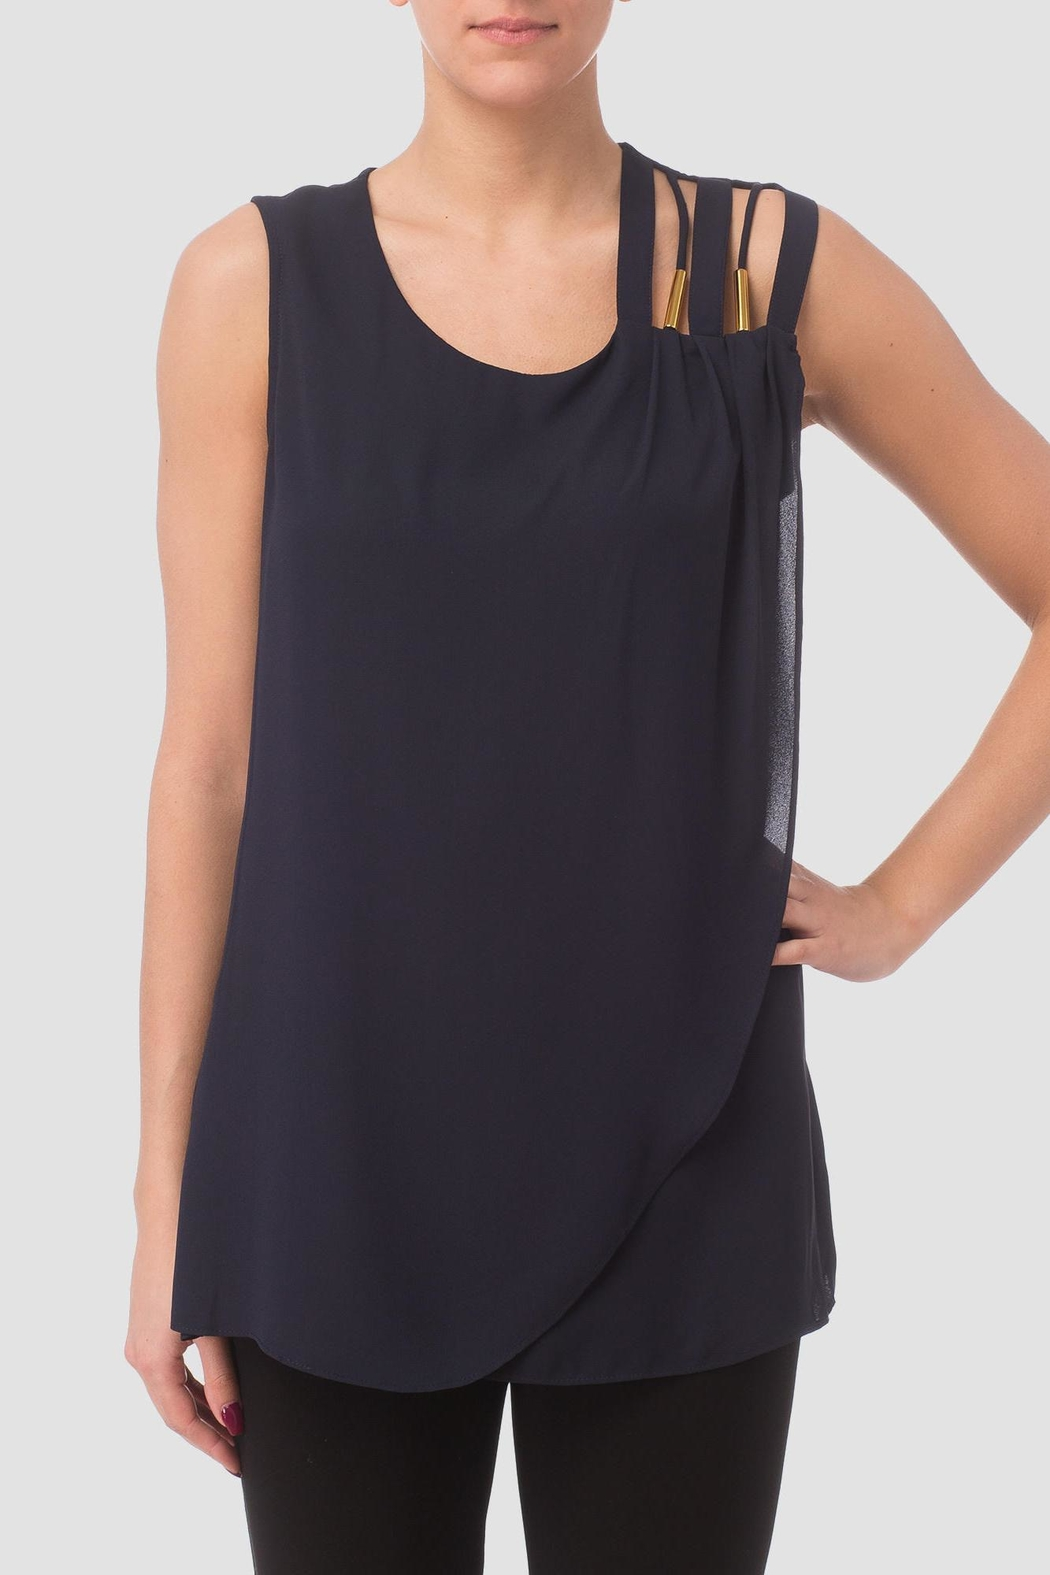 Joseph Ribkoff Sleeve Less Top - Front Cropped Image